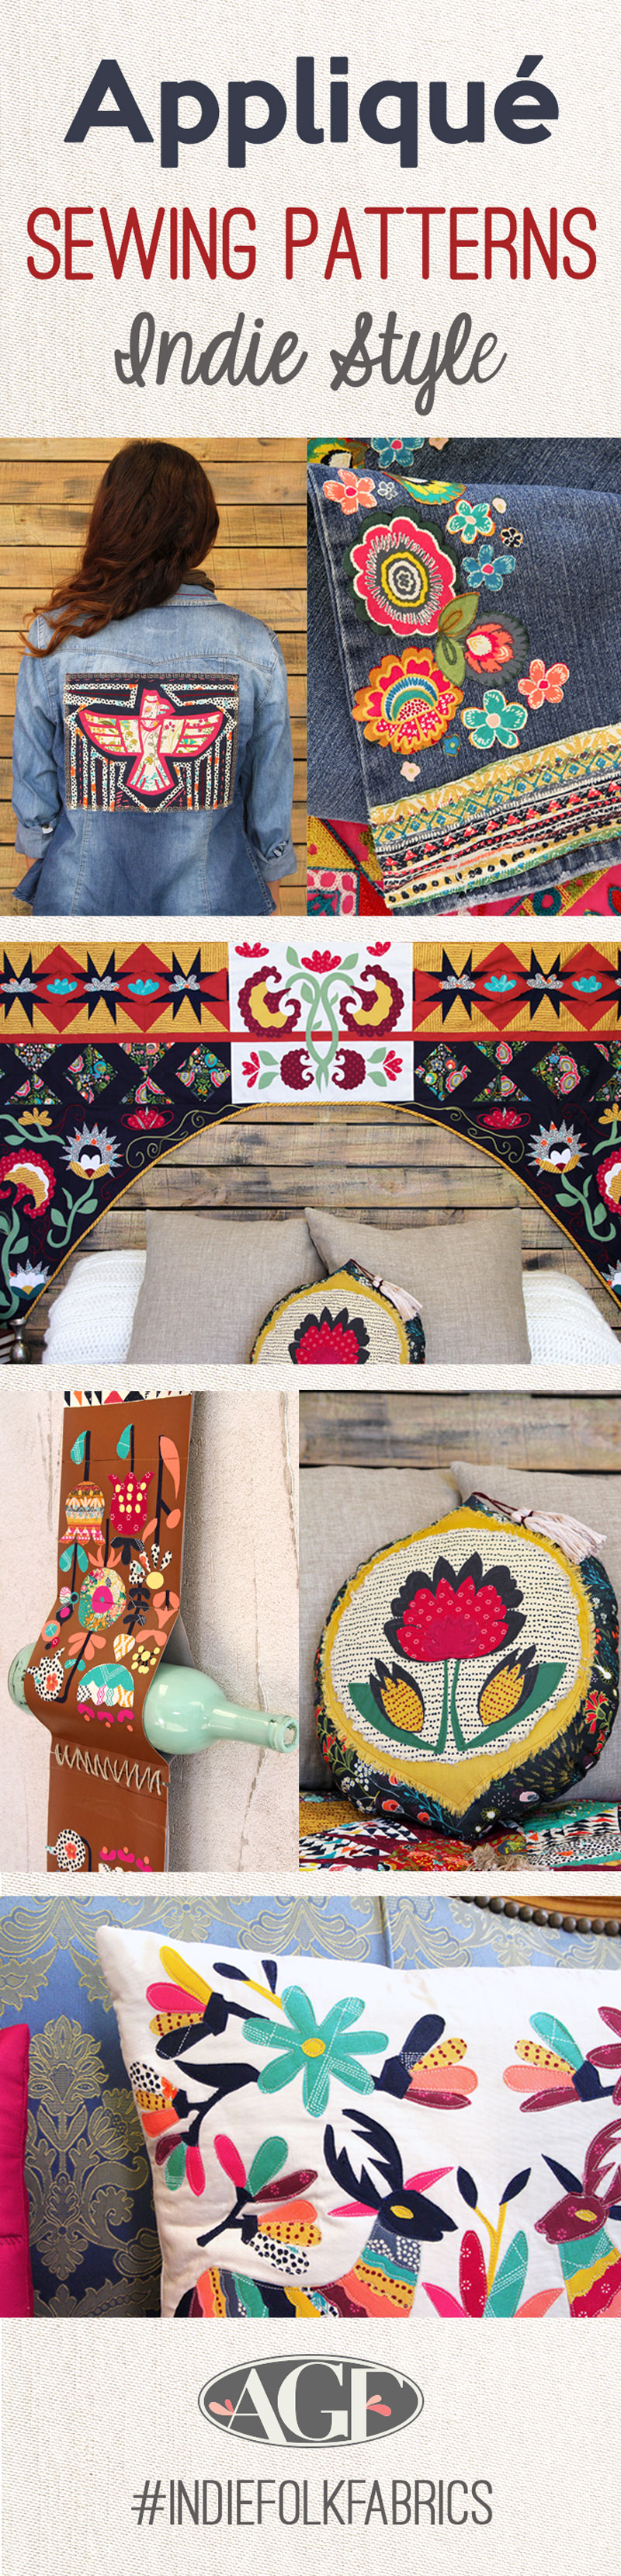 Pinterest-Applique-sewing-patterns-indie-style